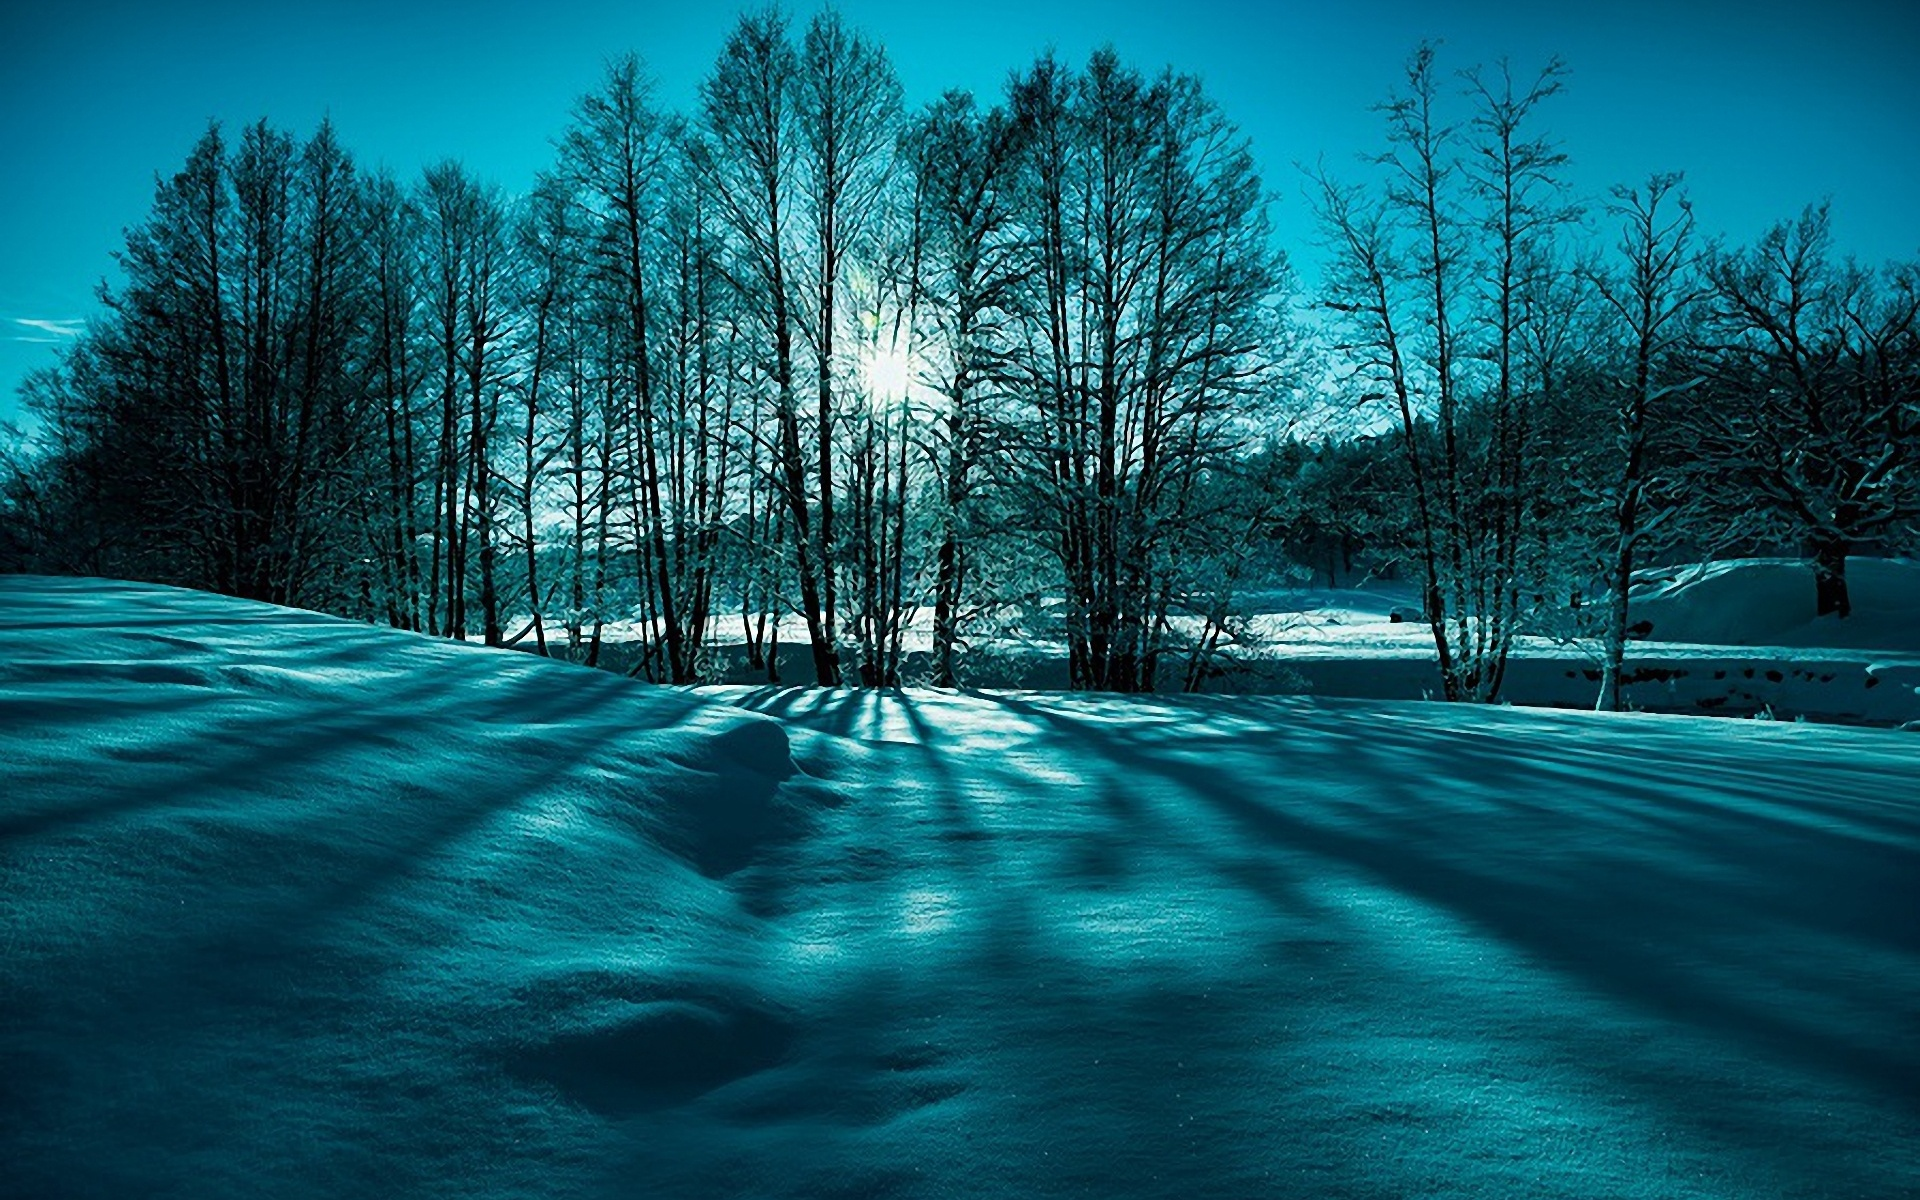 Landscape Snow Trees Winter Nature Beauty Wallpaper